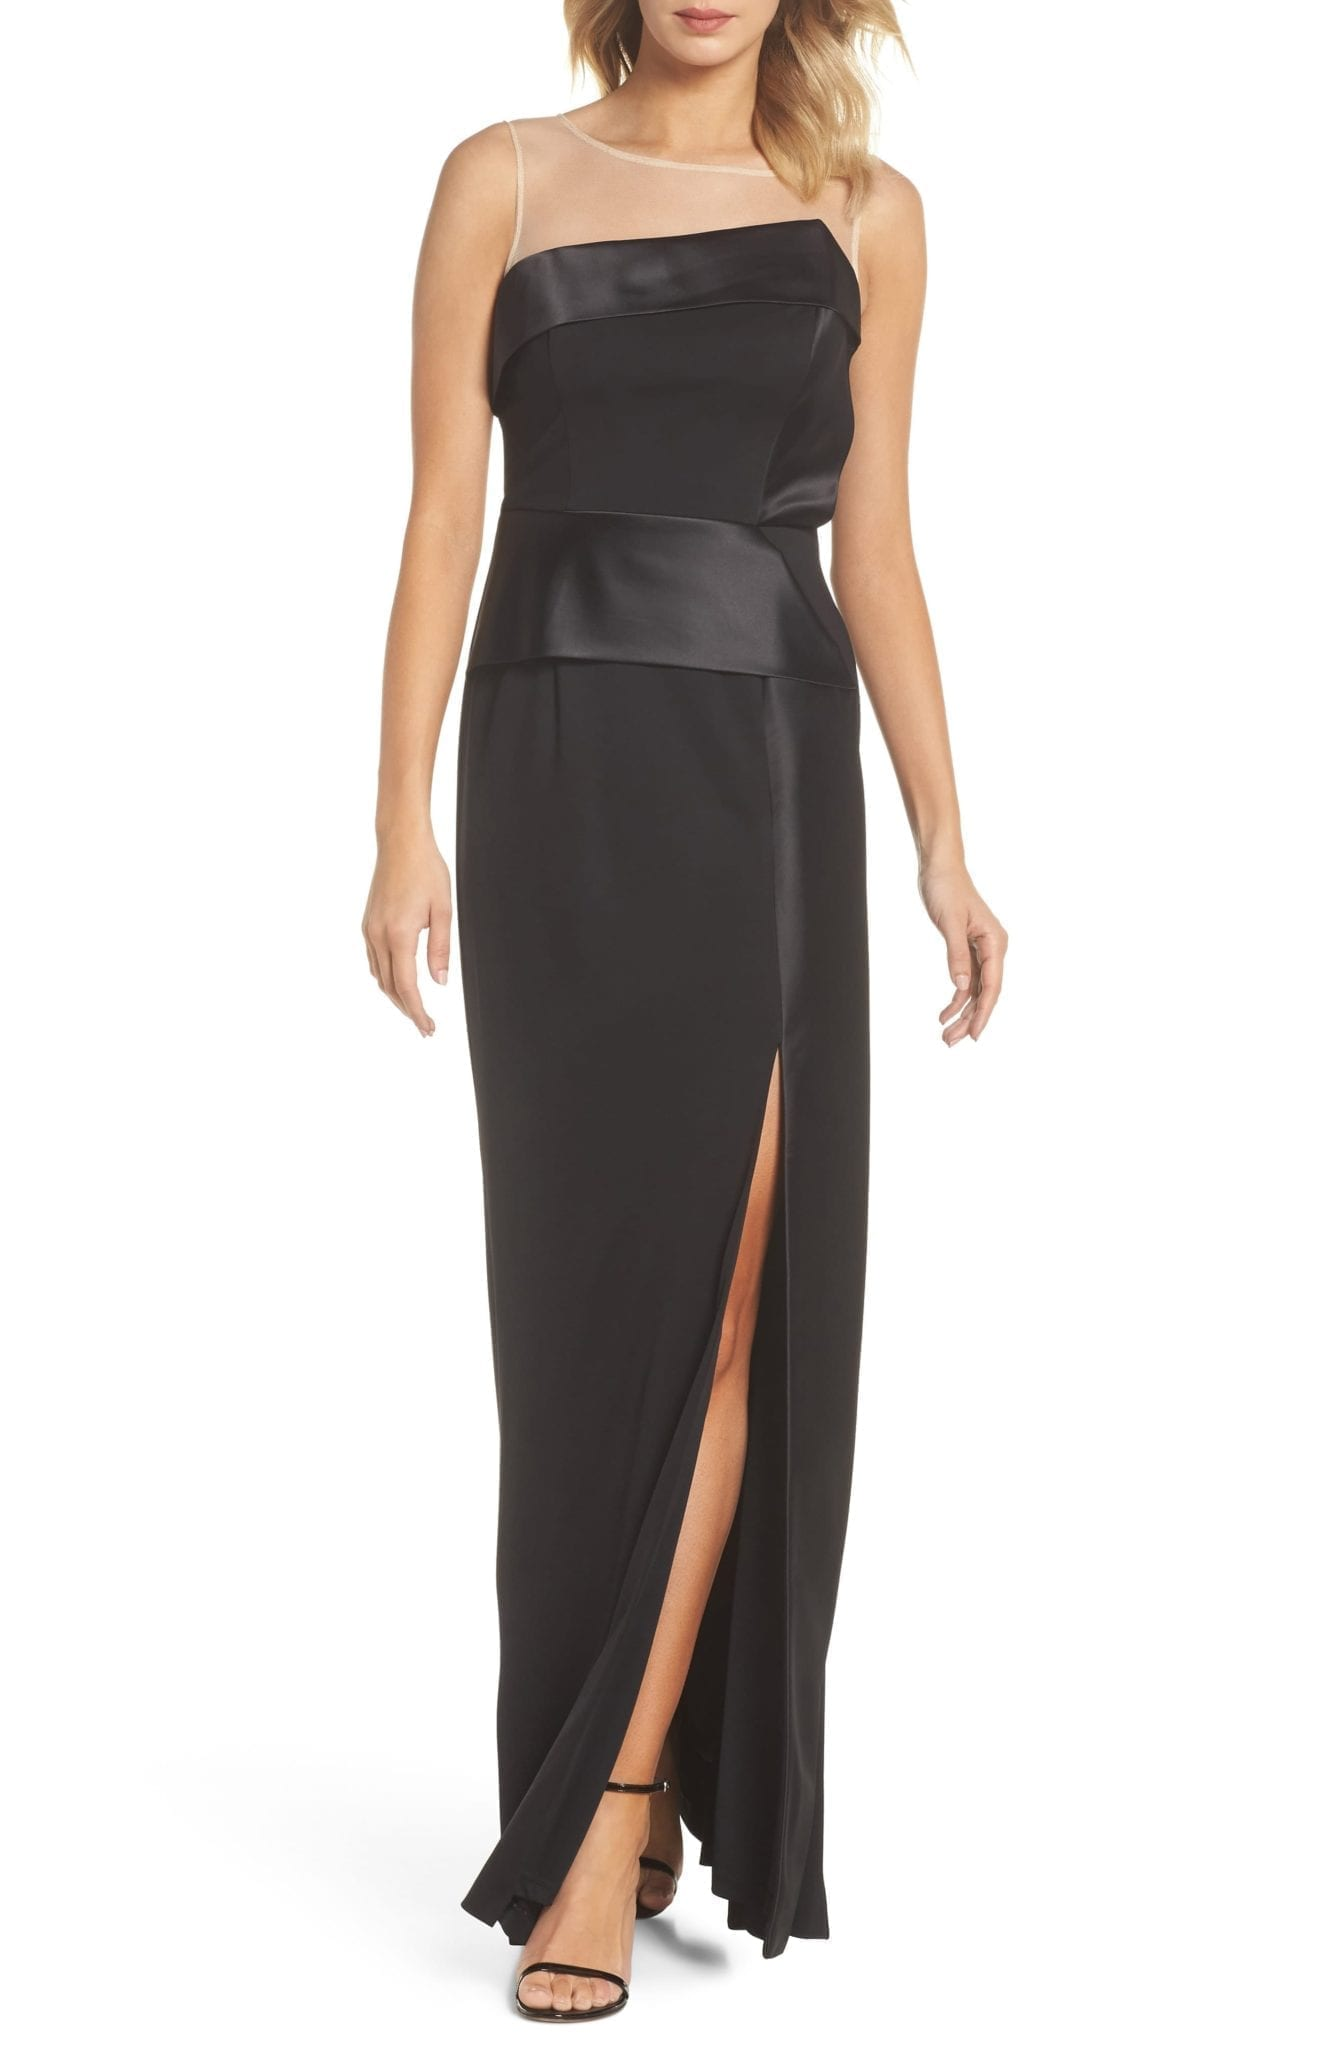 ADRIANNA PAPELL Lola Black Gown